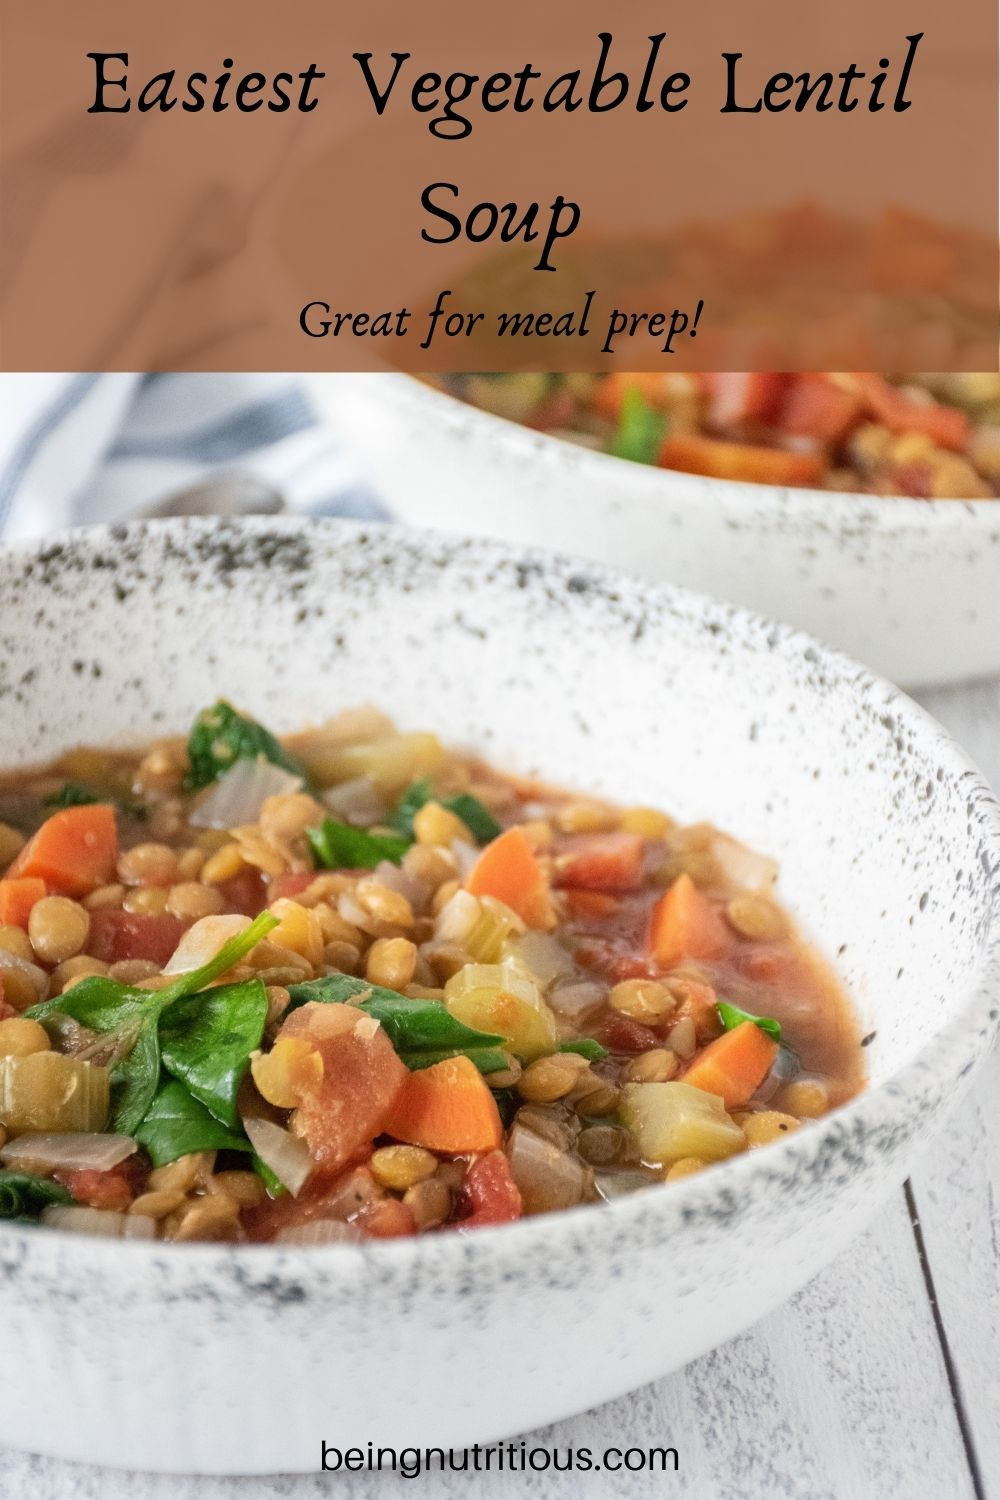 Lentil soup in a bowl. Text overlay: Easiest Vegetable Lentil soup; great for meal prep!